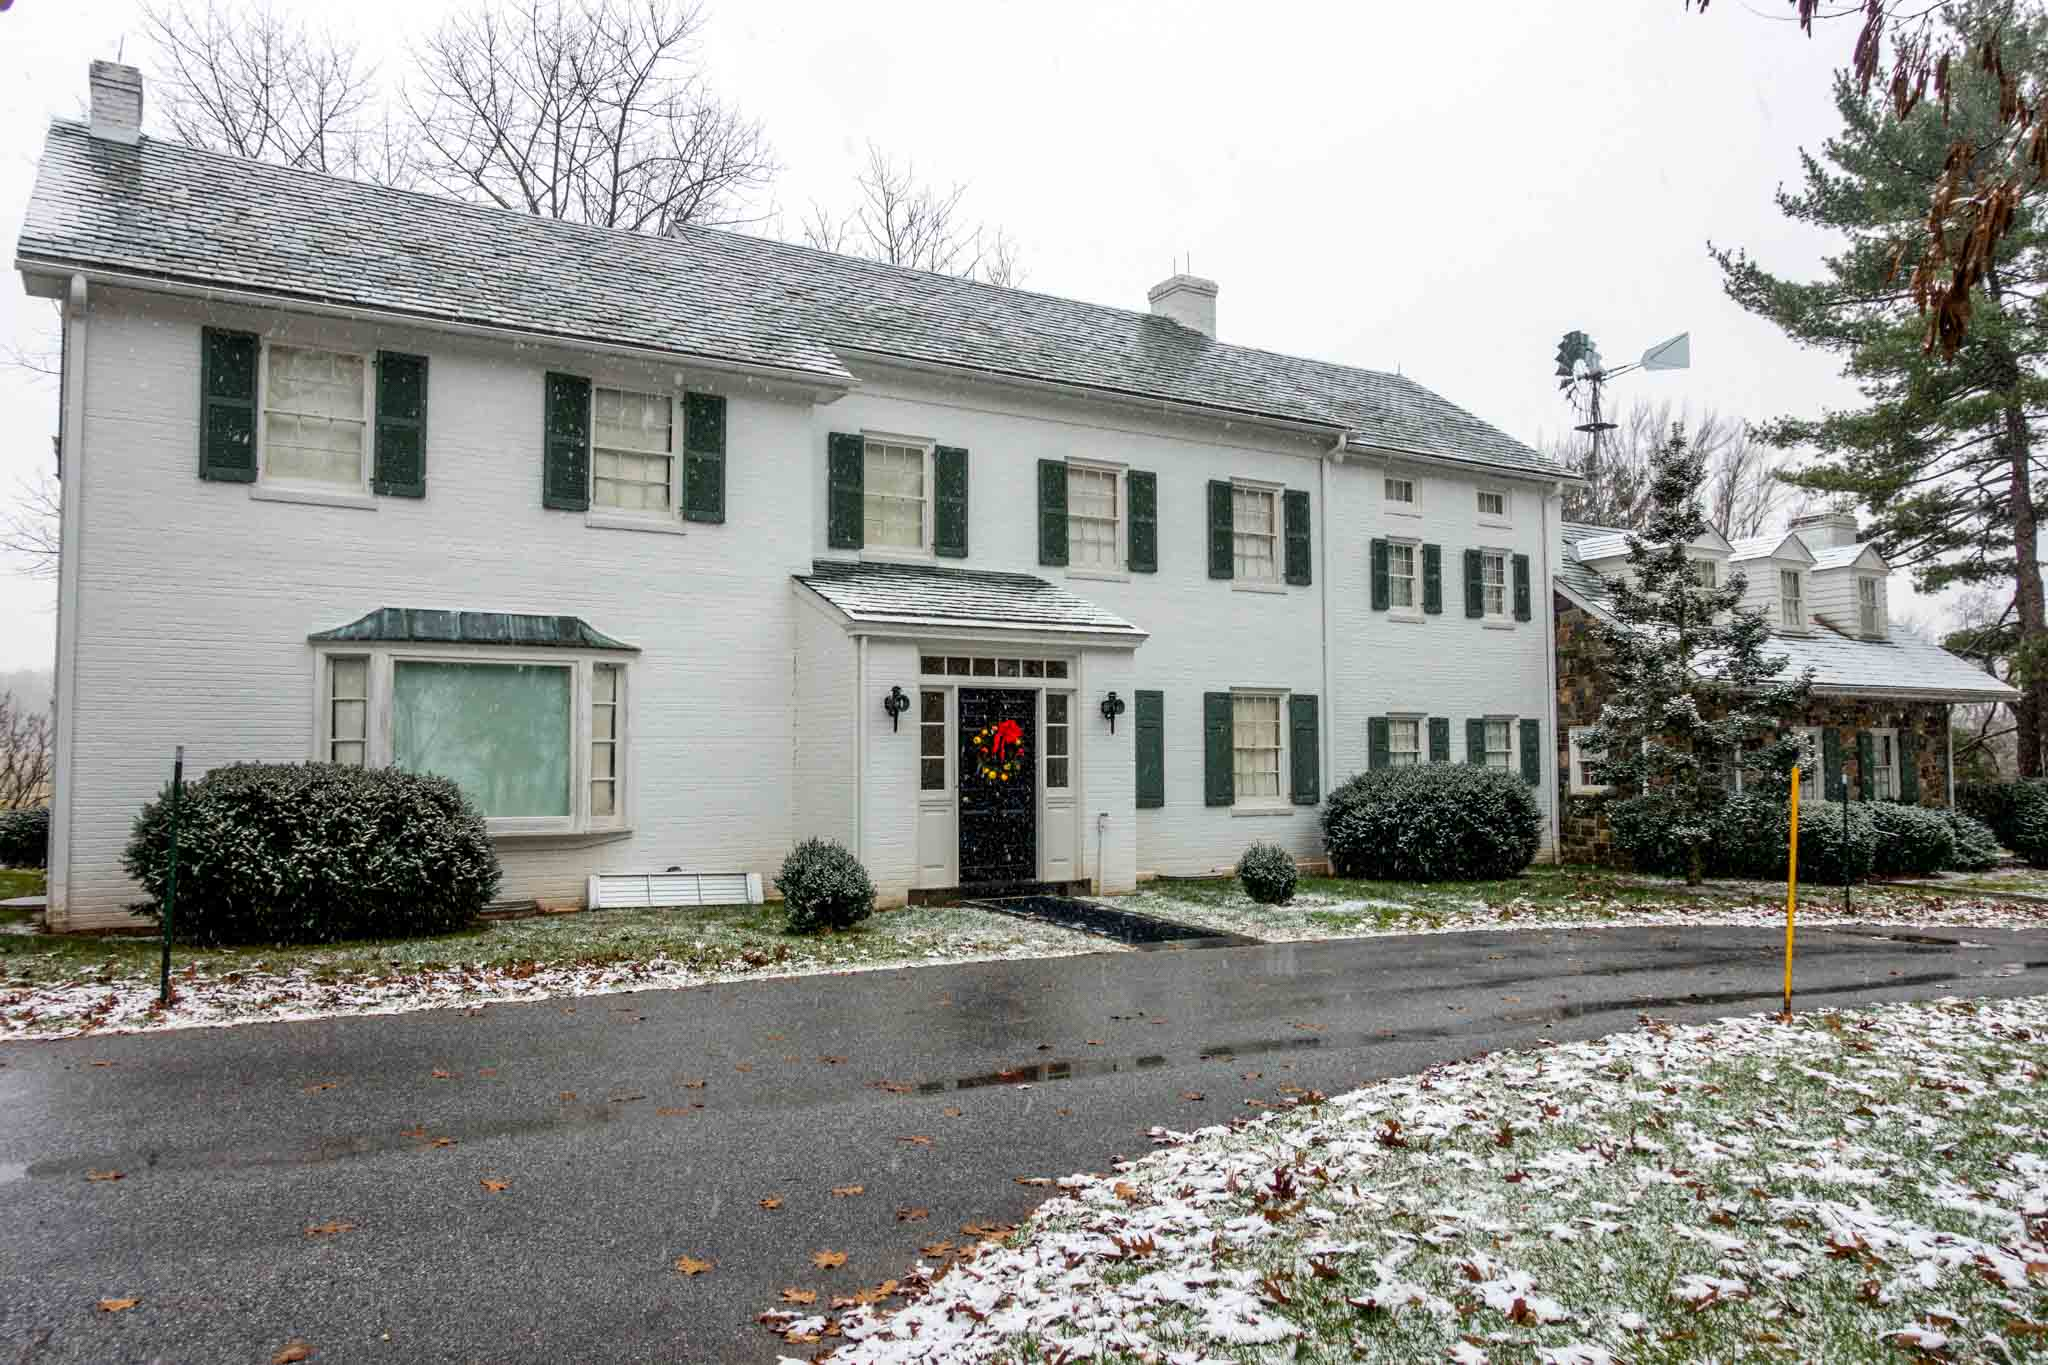 Exterior of a white brick house and snow on the ground